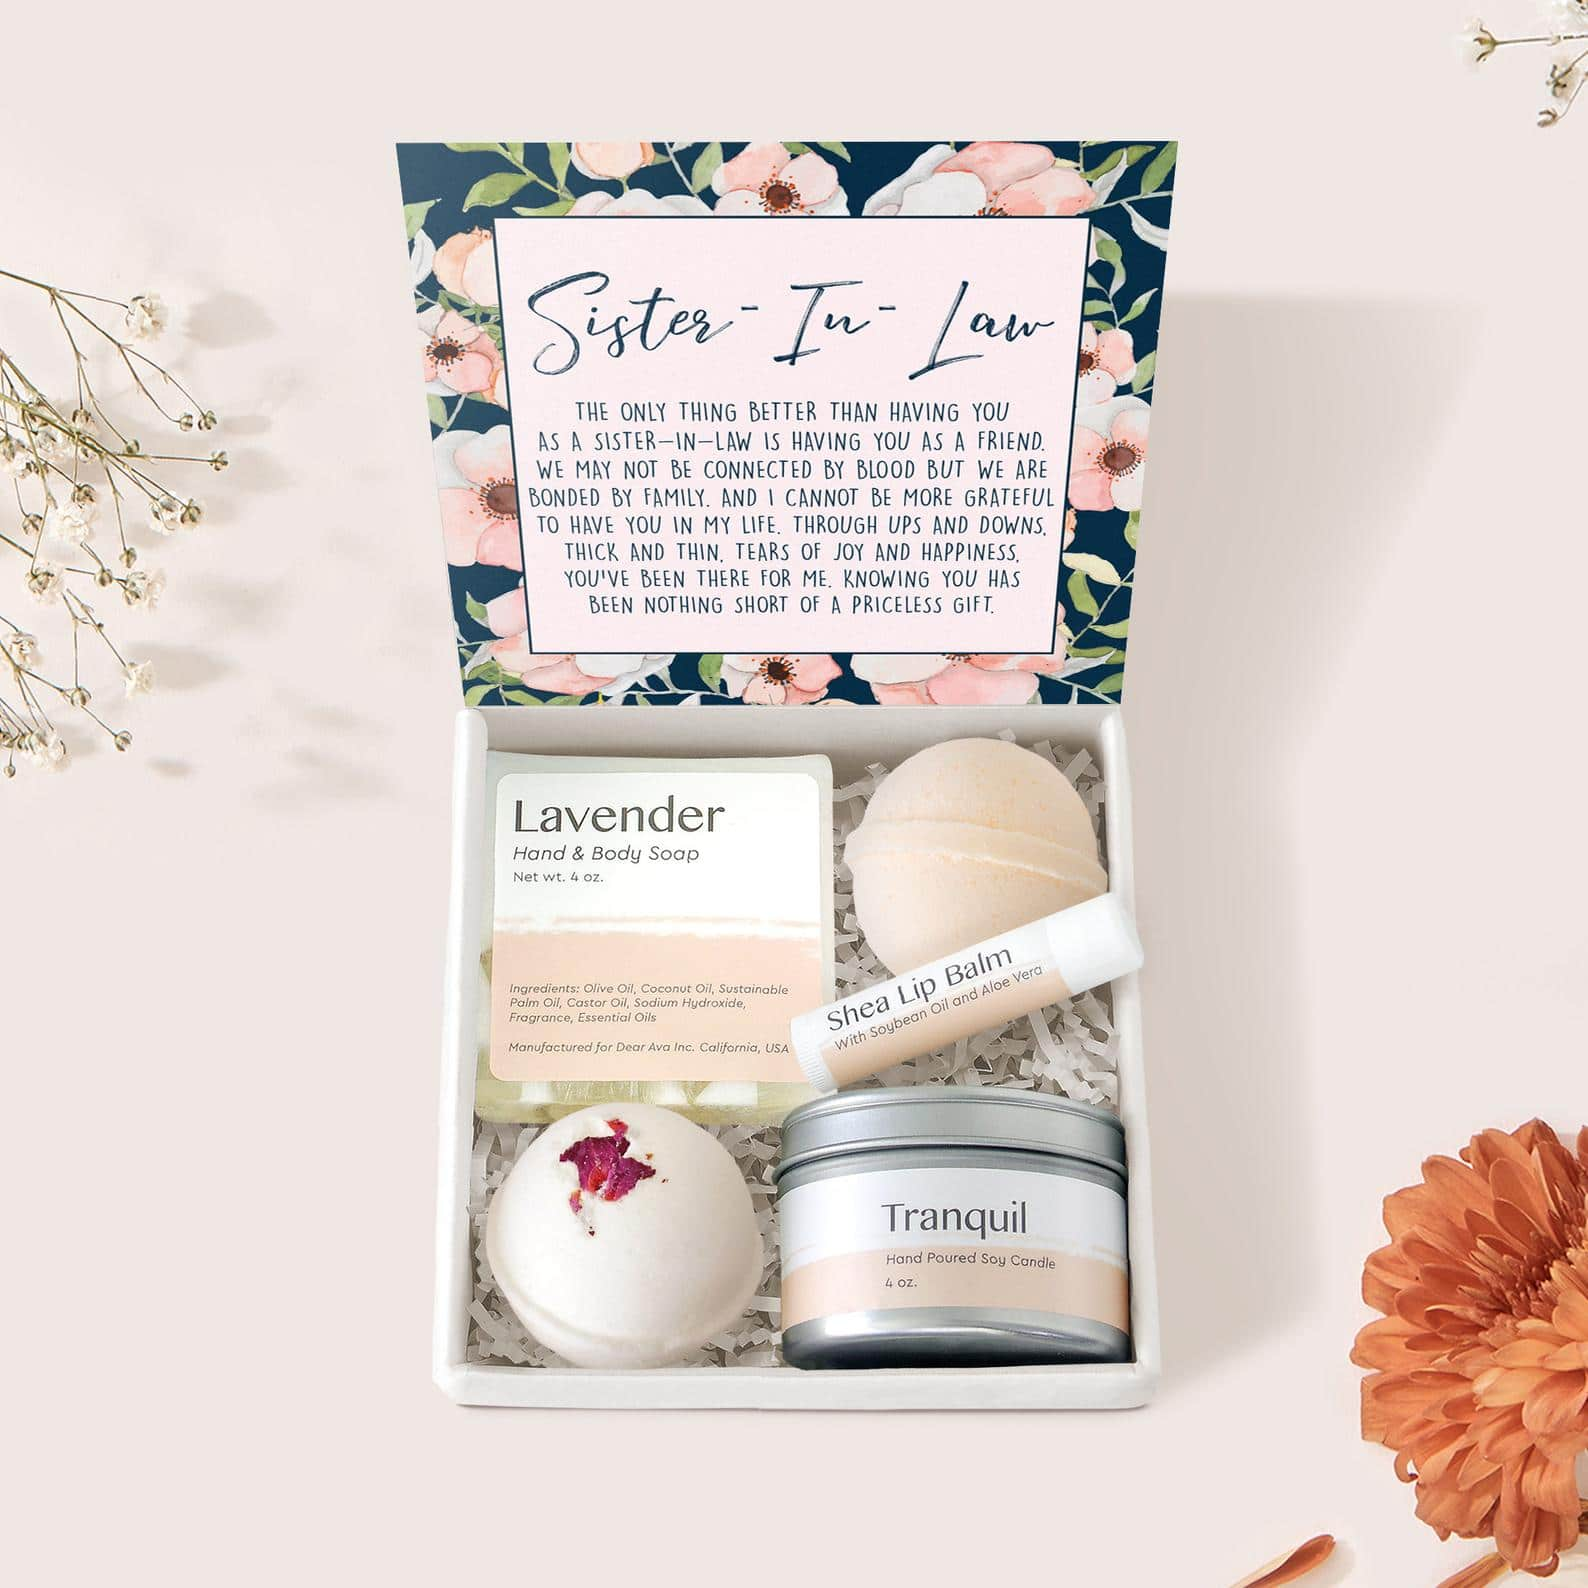 gifts-for-sister-in-law-spa-gift-box